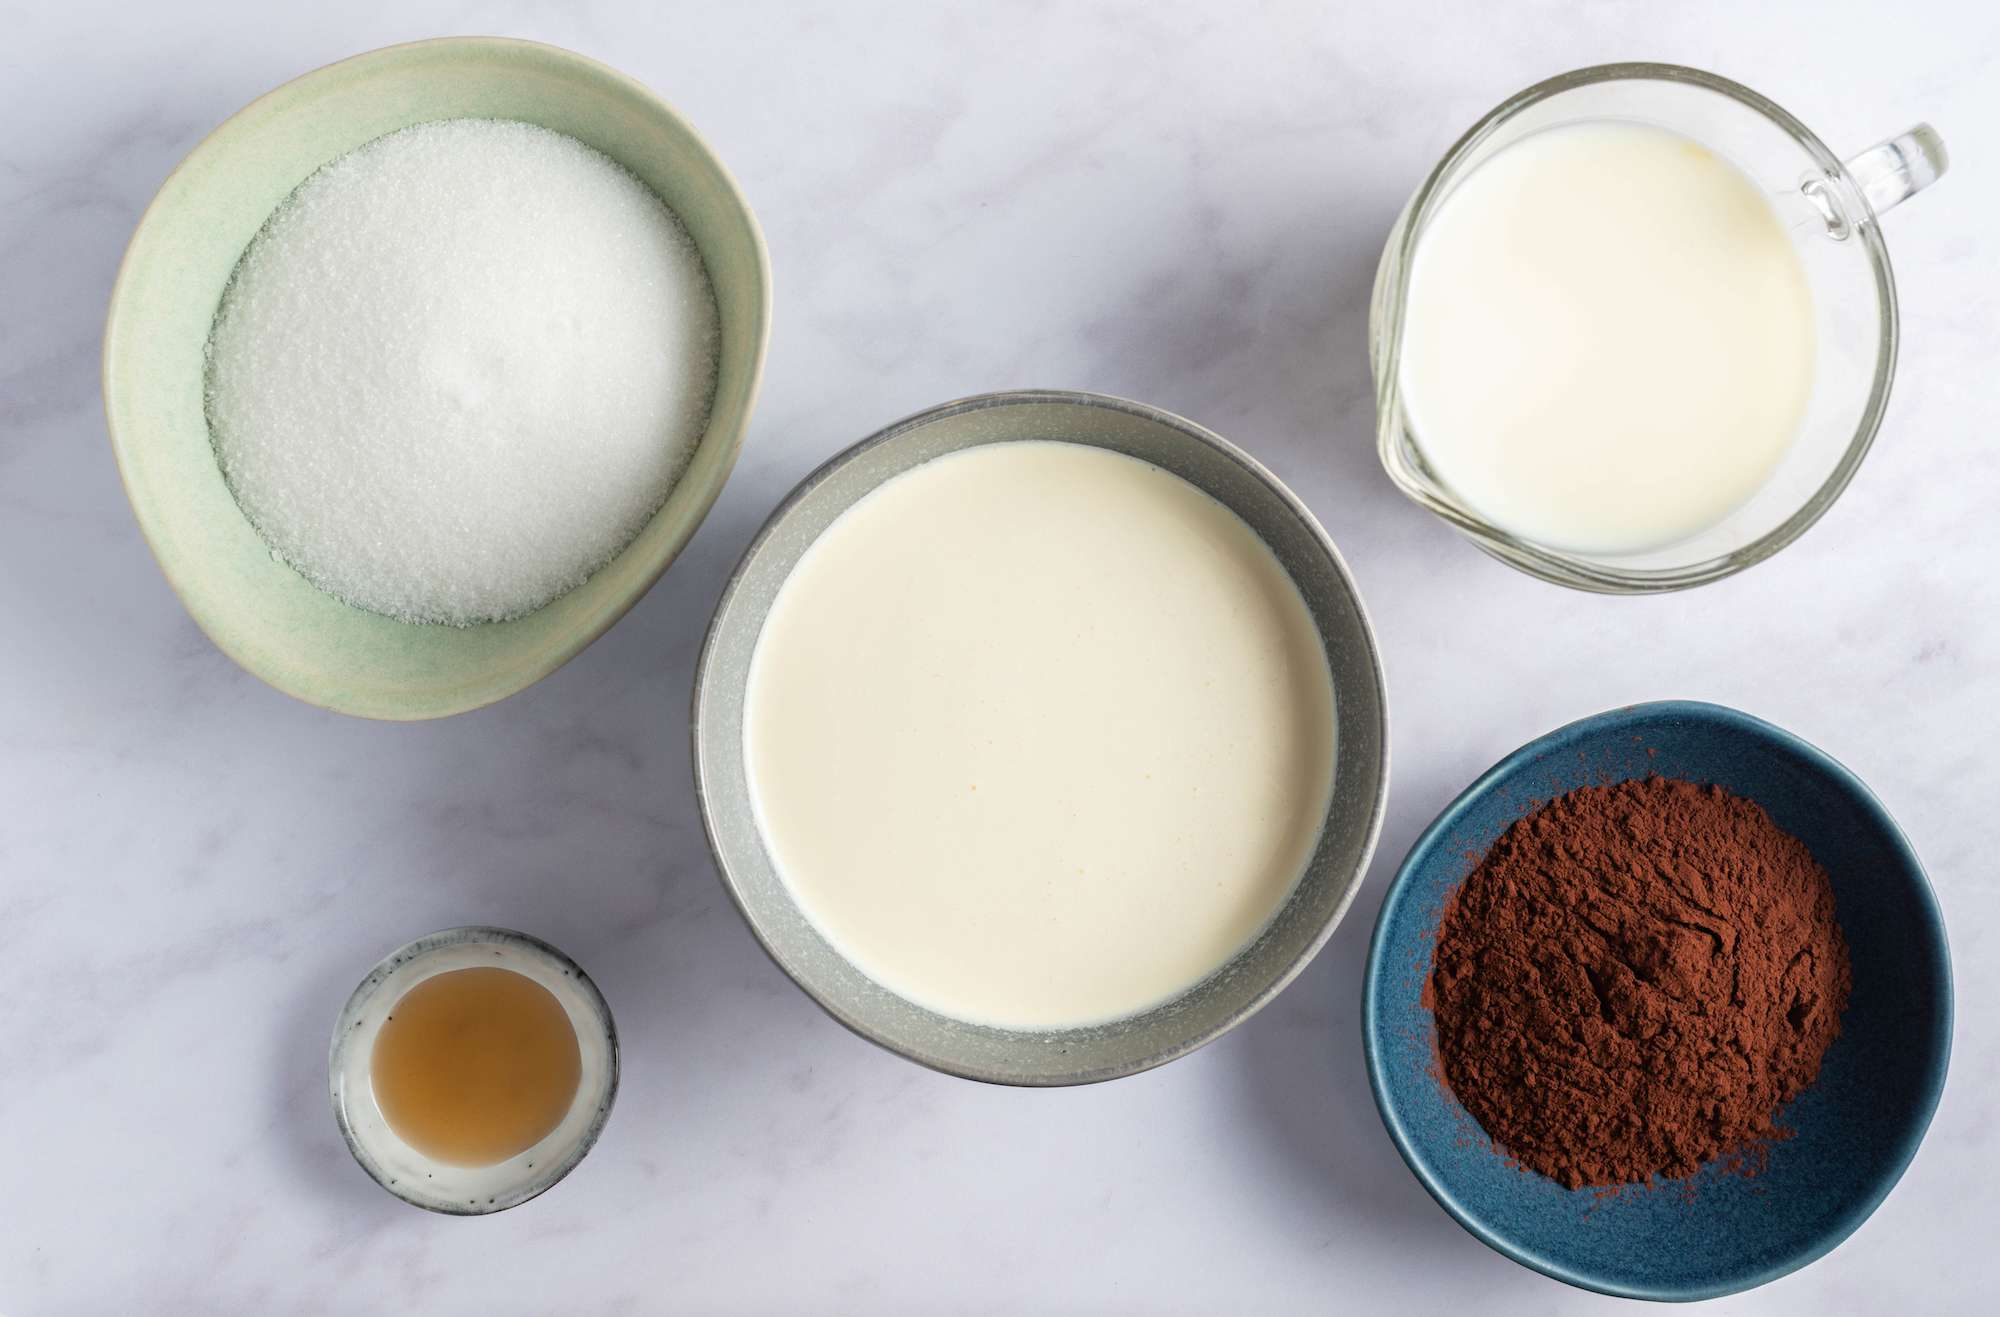 Ingredients for easy chocolate ice cream